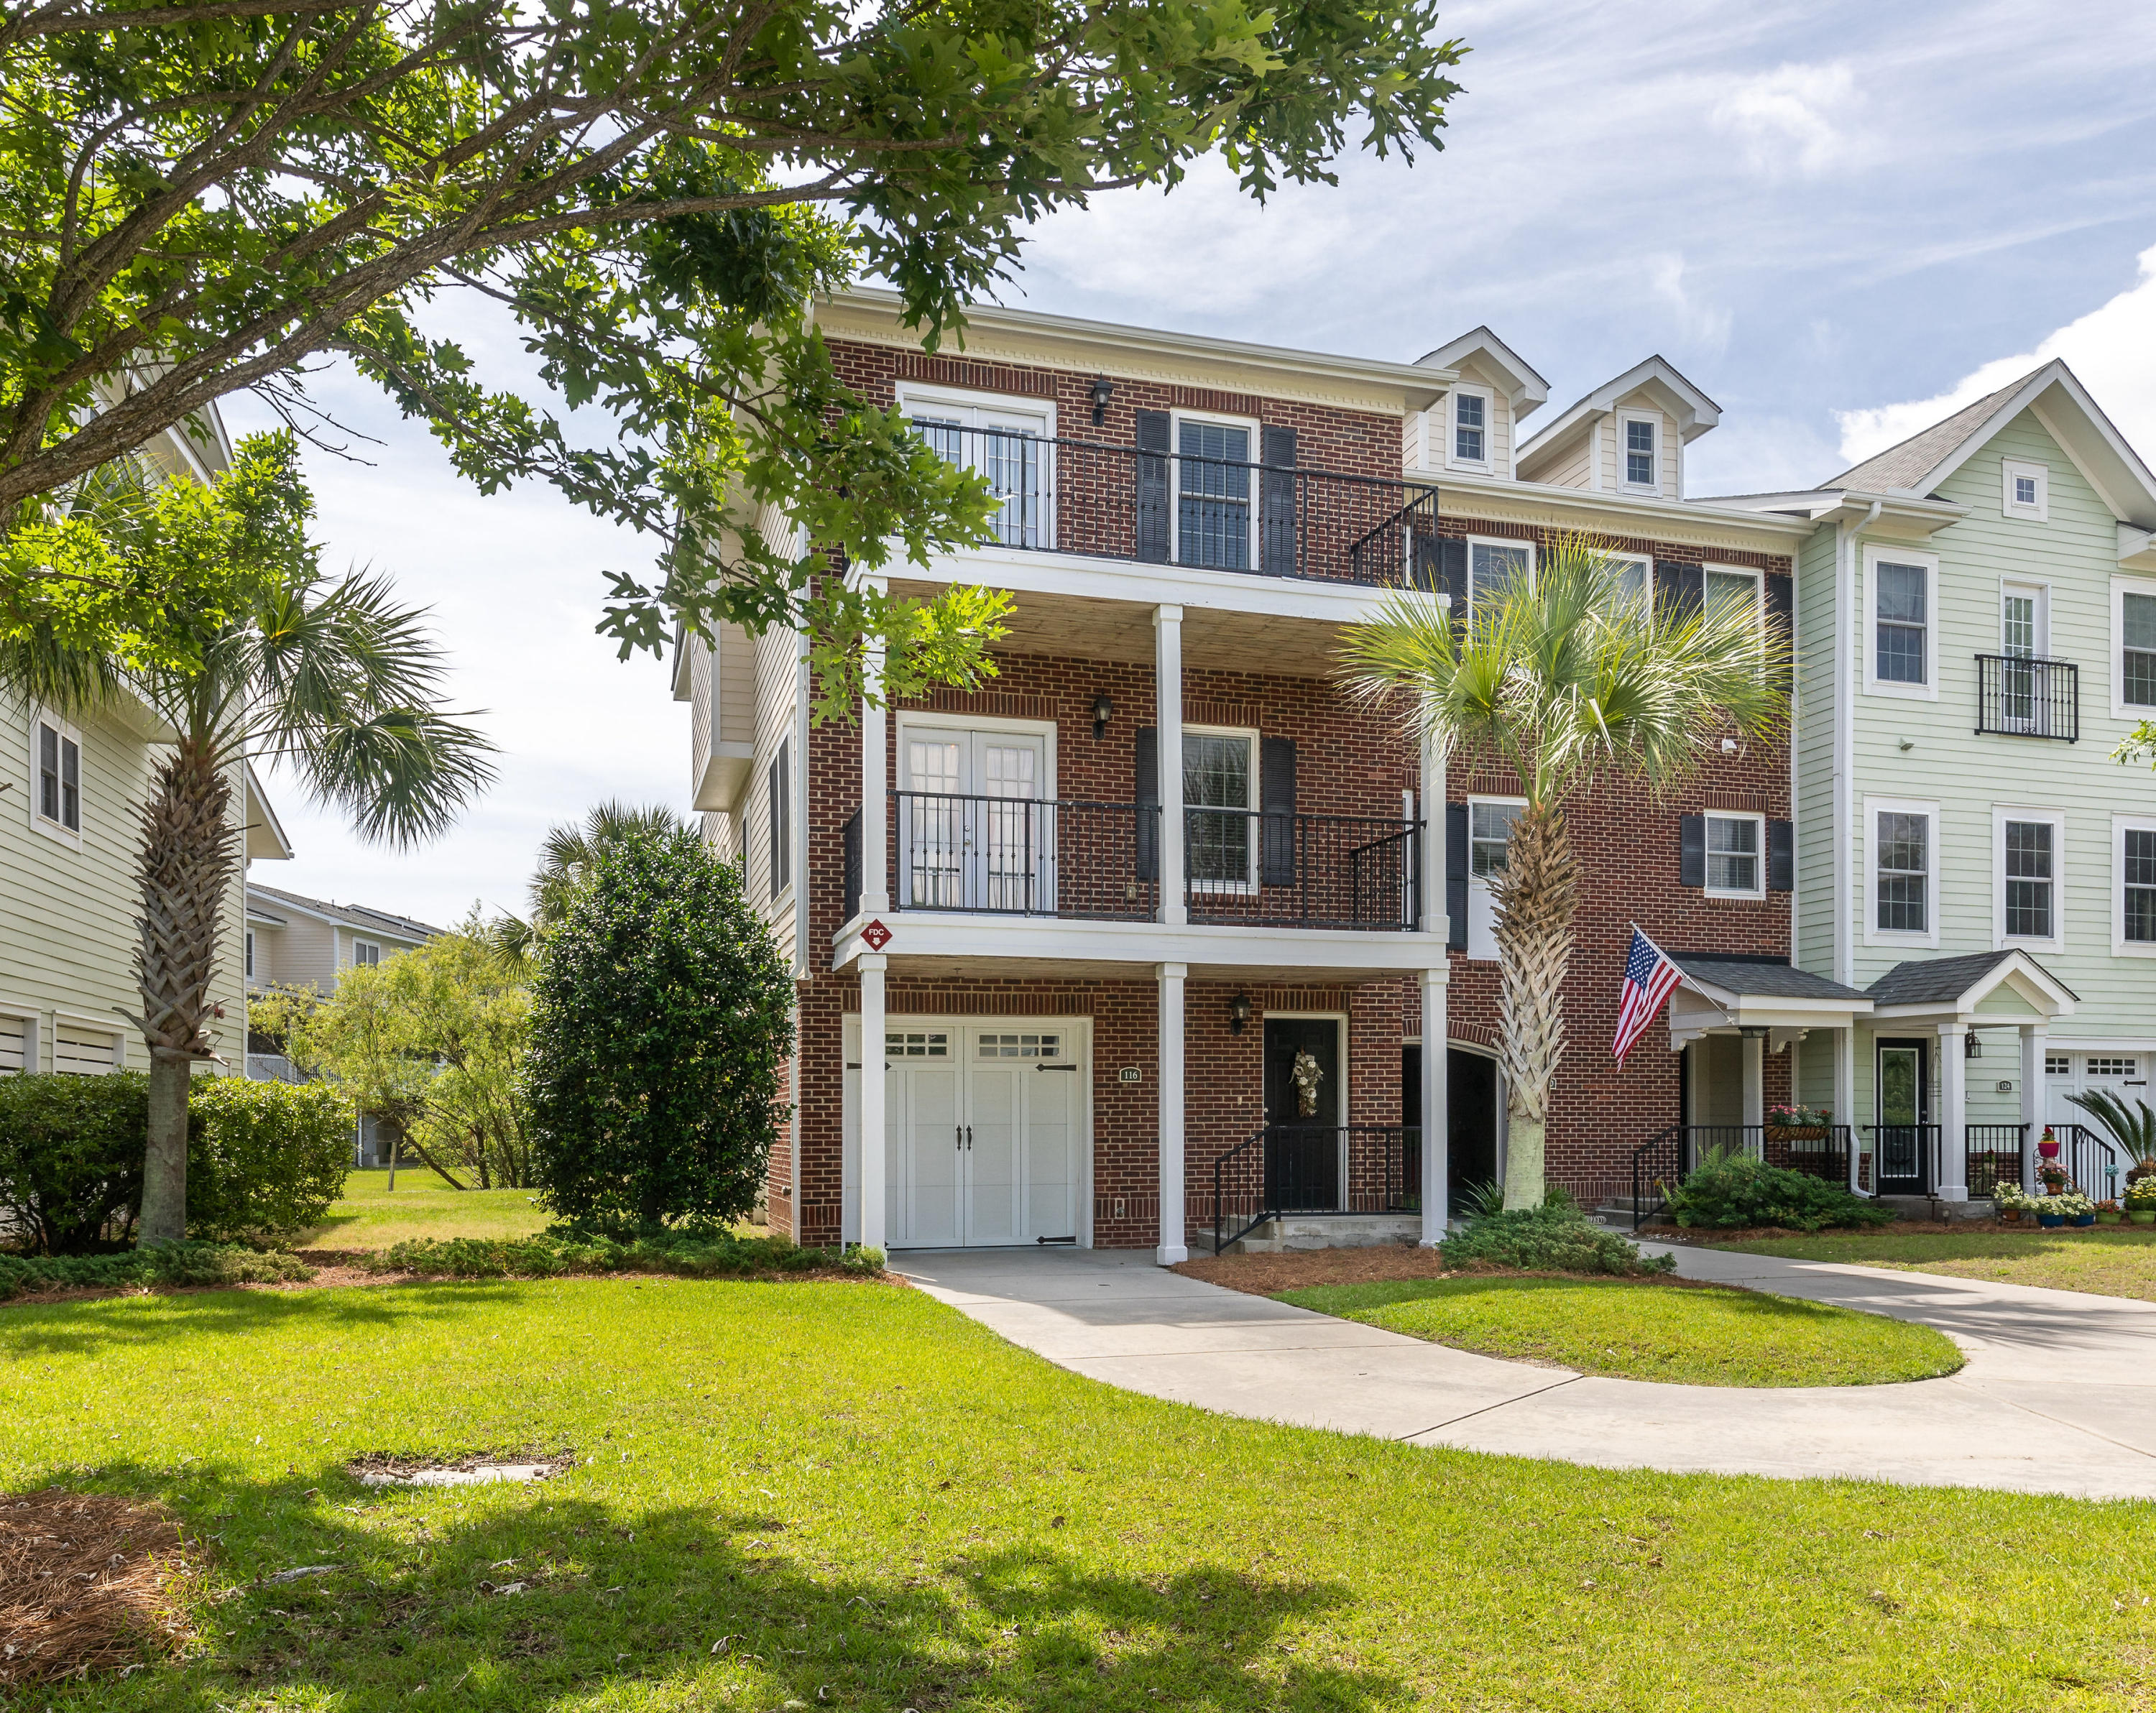 Etiwan Pointe Homes For Sale - 116 Summers Creek, Mount Pleasant, SC - 15